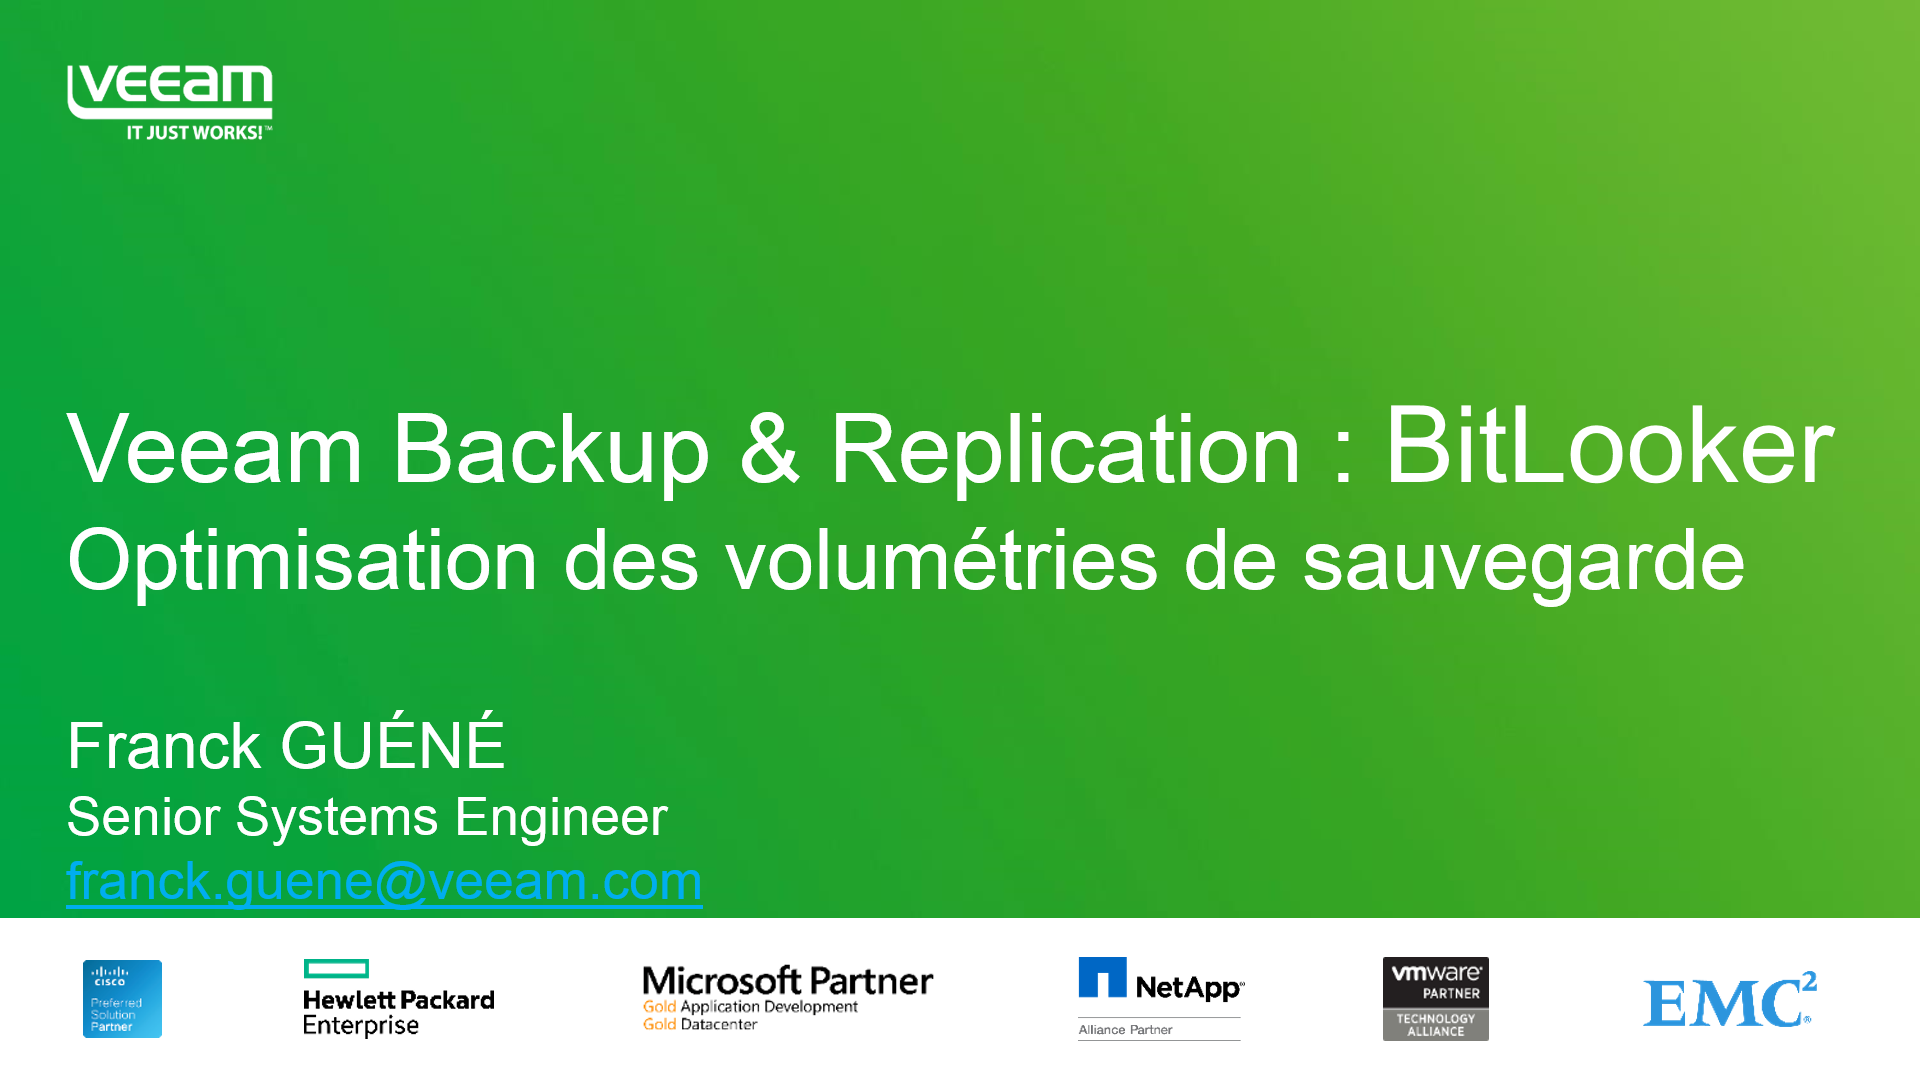 Le quart d'heure Veeam : Bitlooker